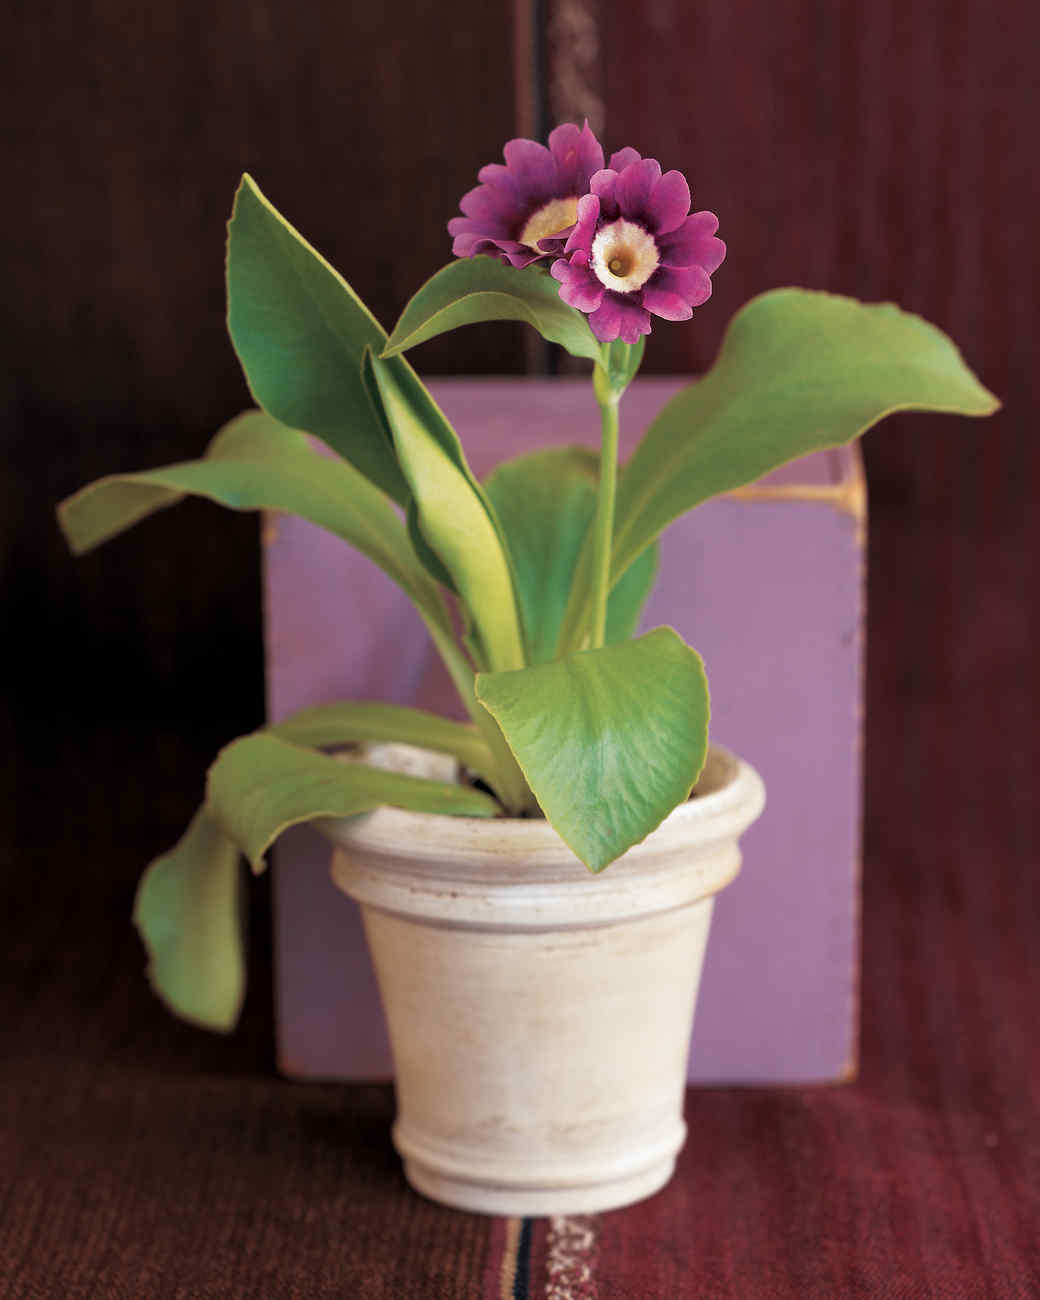 potted-purple-flower-goodthings-ml904aa1-0115.jpg